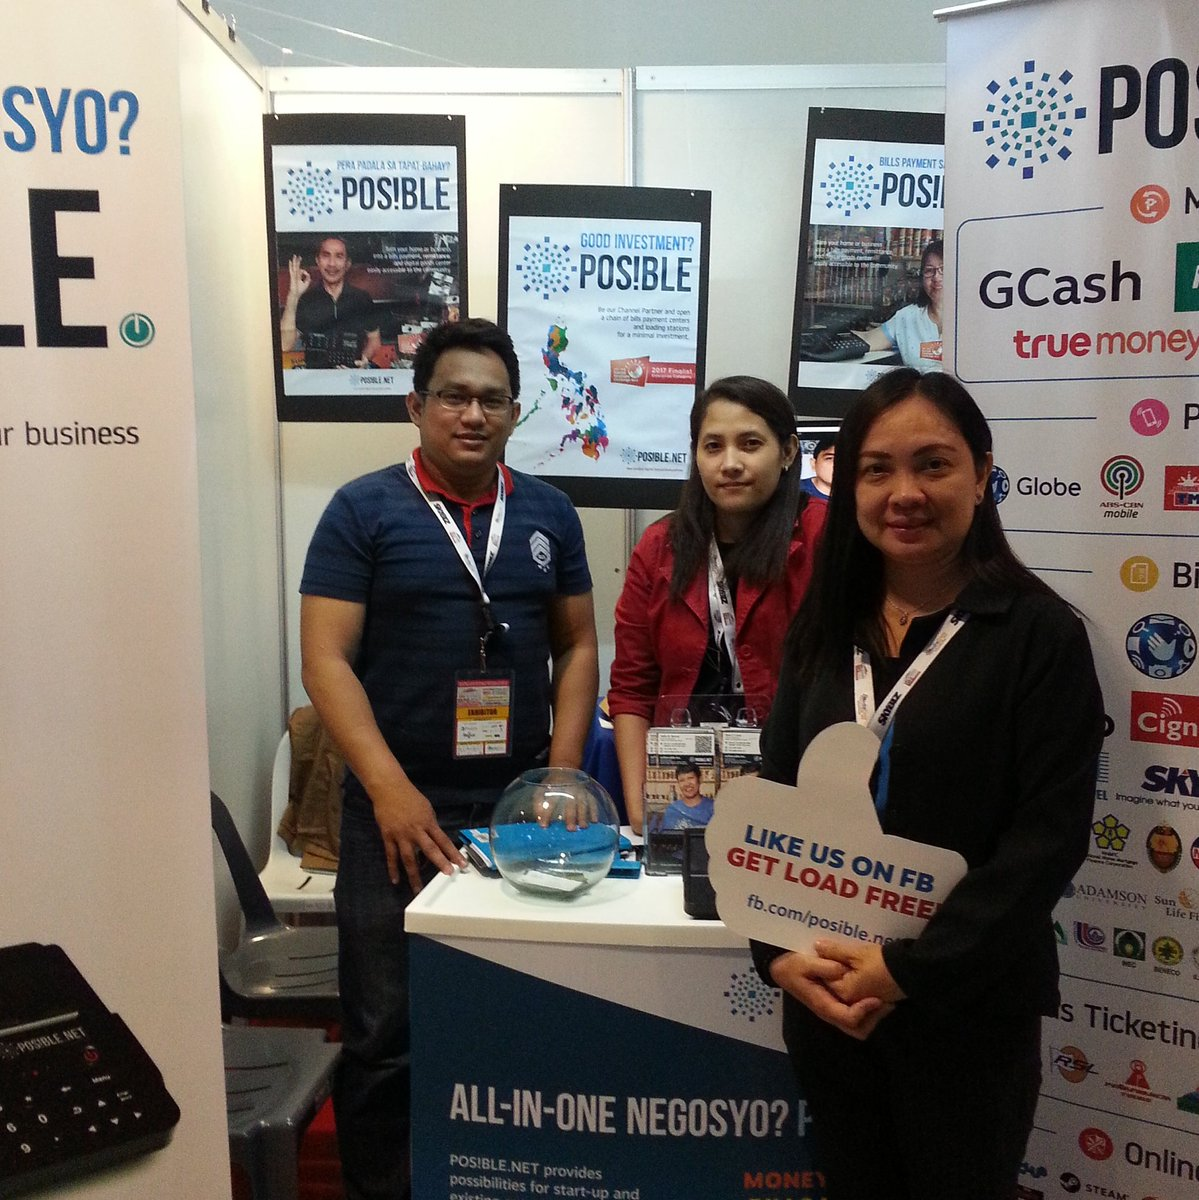 test Twitter Media - Let's talk #business #billspay #money #remittance here at SMX Manila! Visit the #Posible booth at #PhilSME2017 until 7pm only today https://t.co/cew9WU4hOV